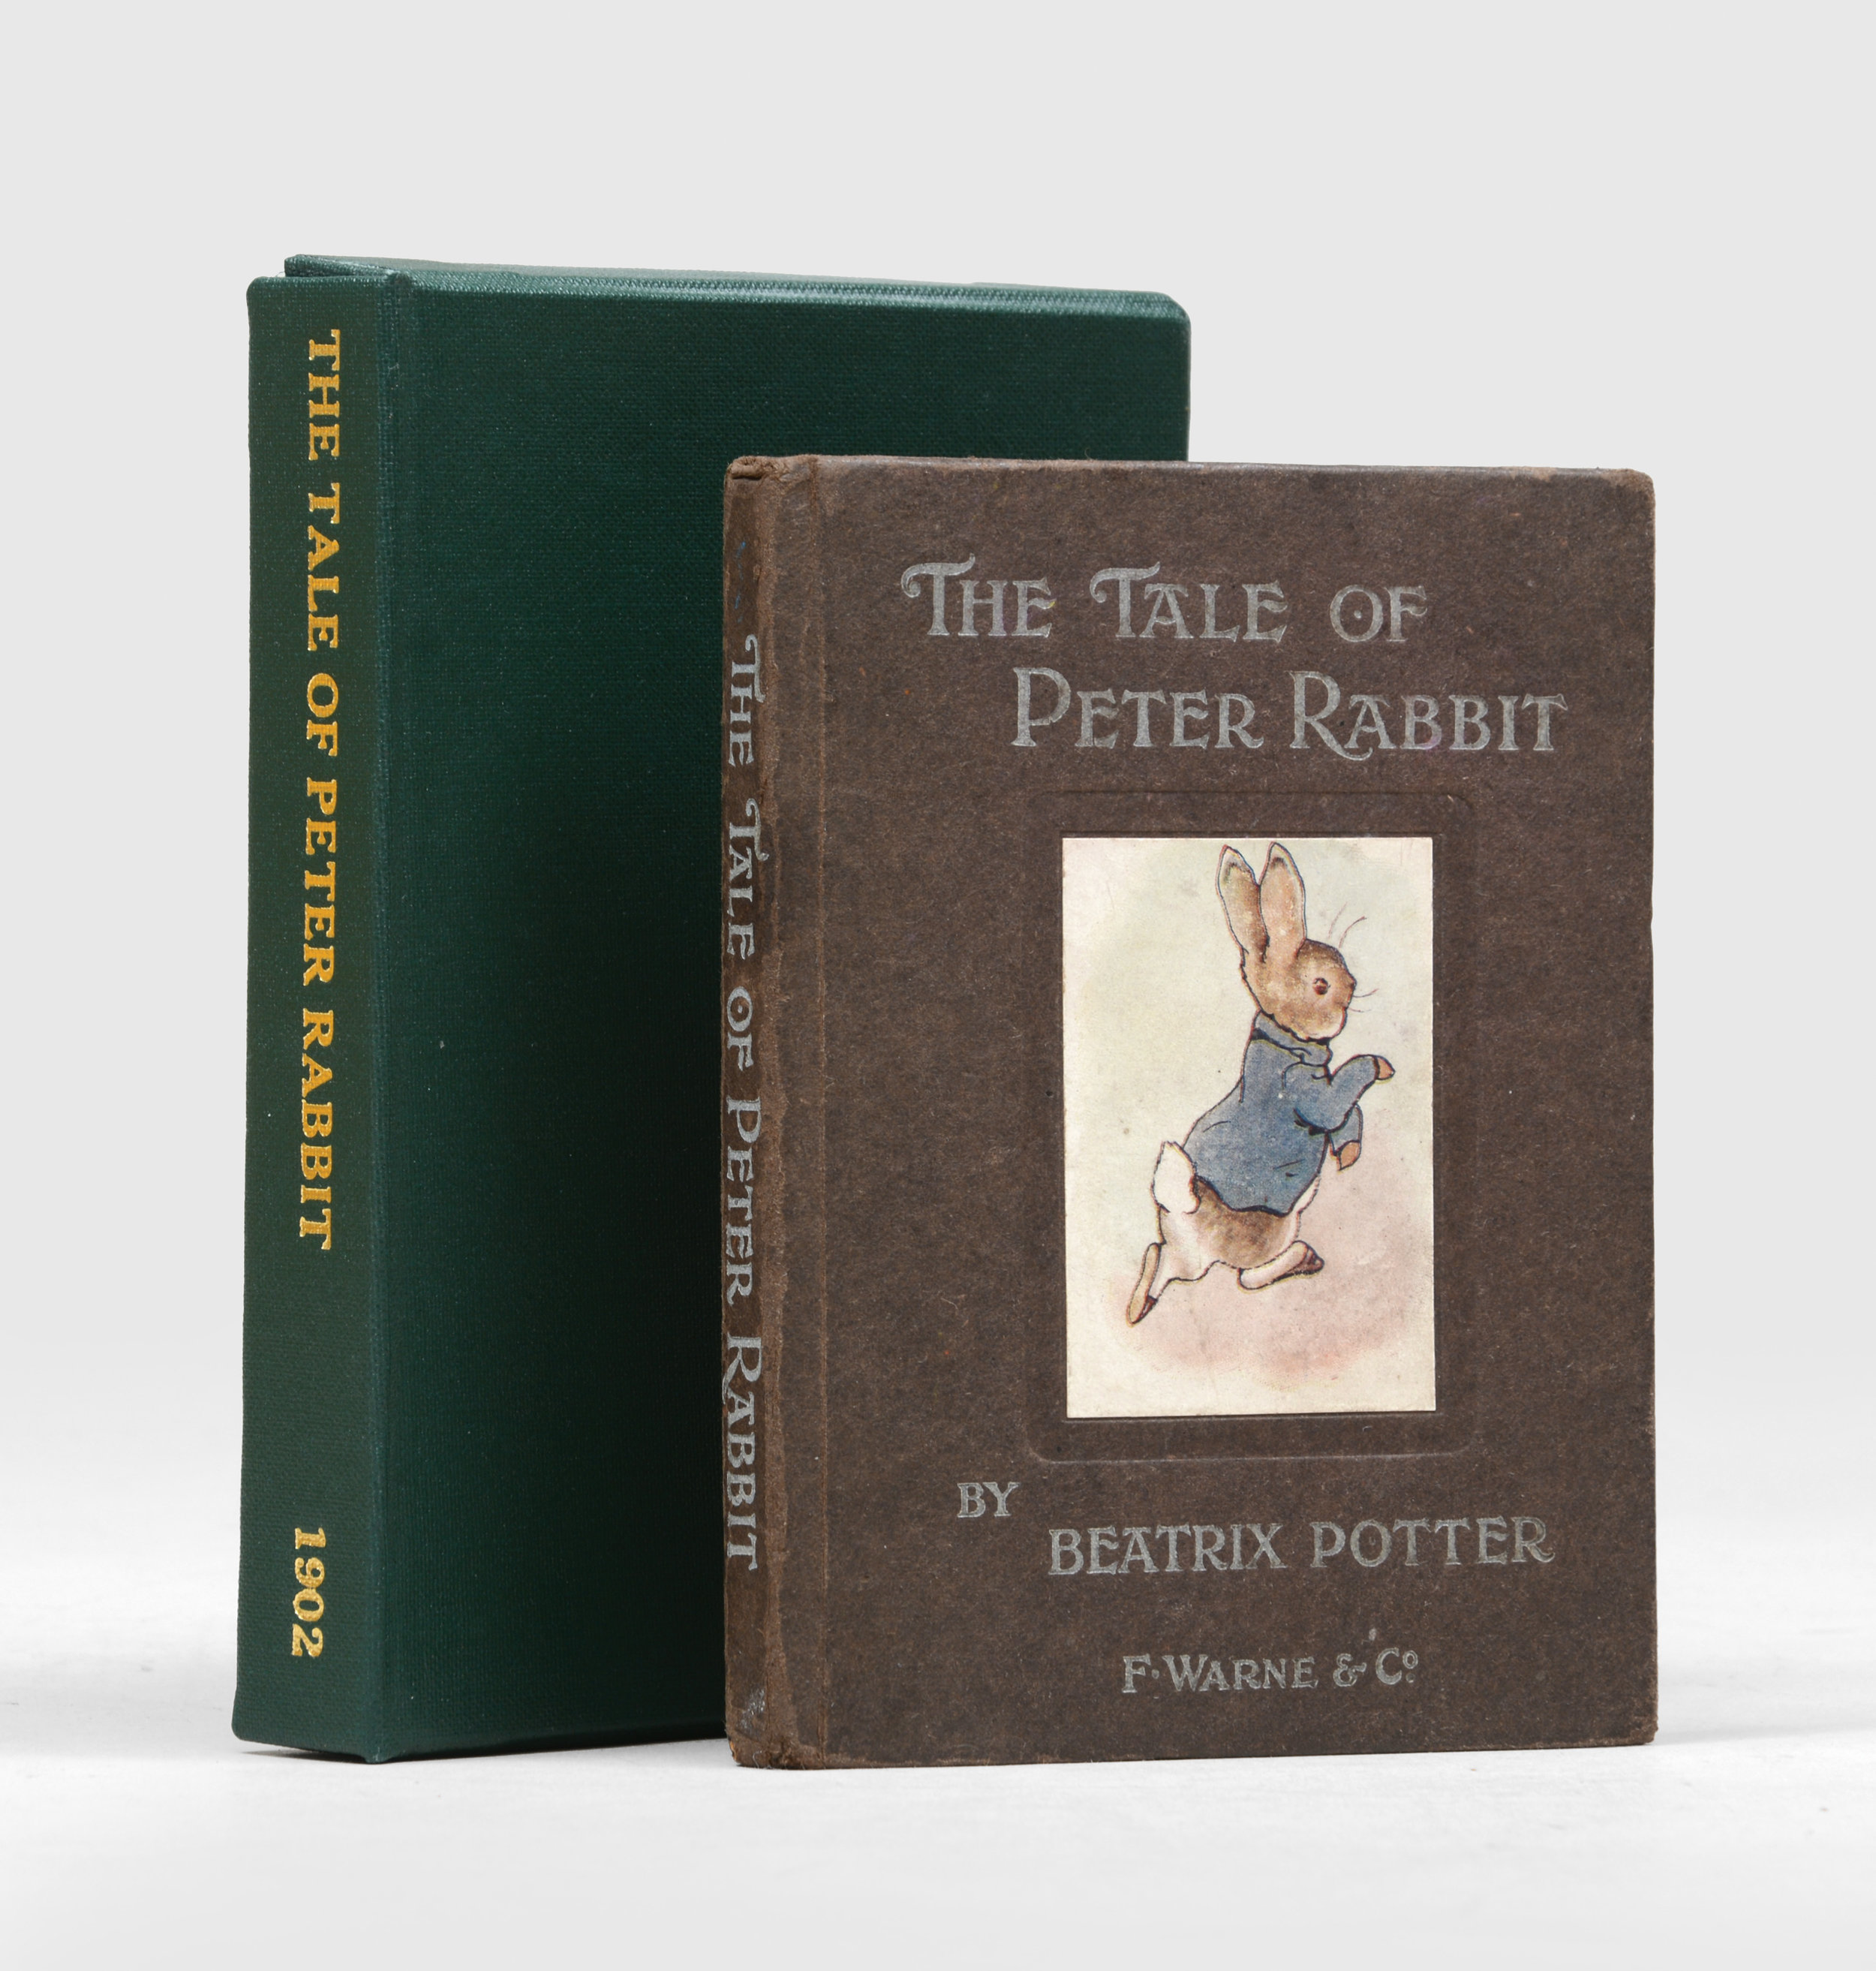 Offered by Paul Foster Books